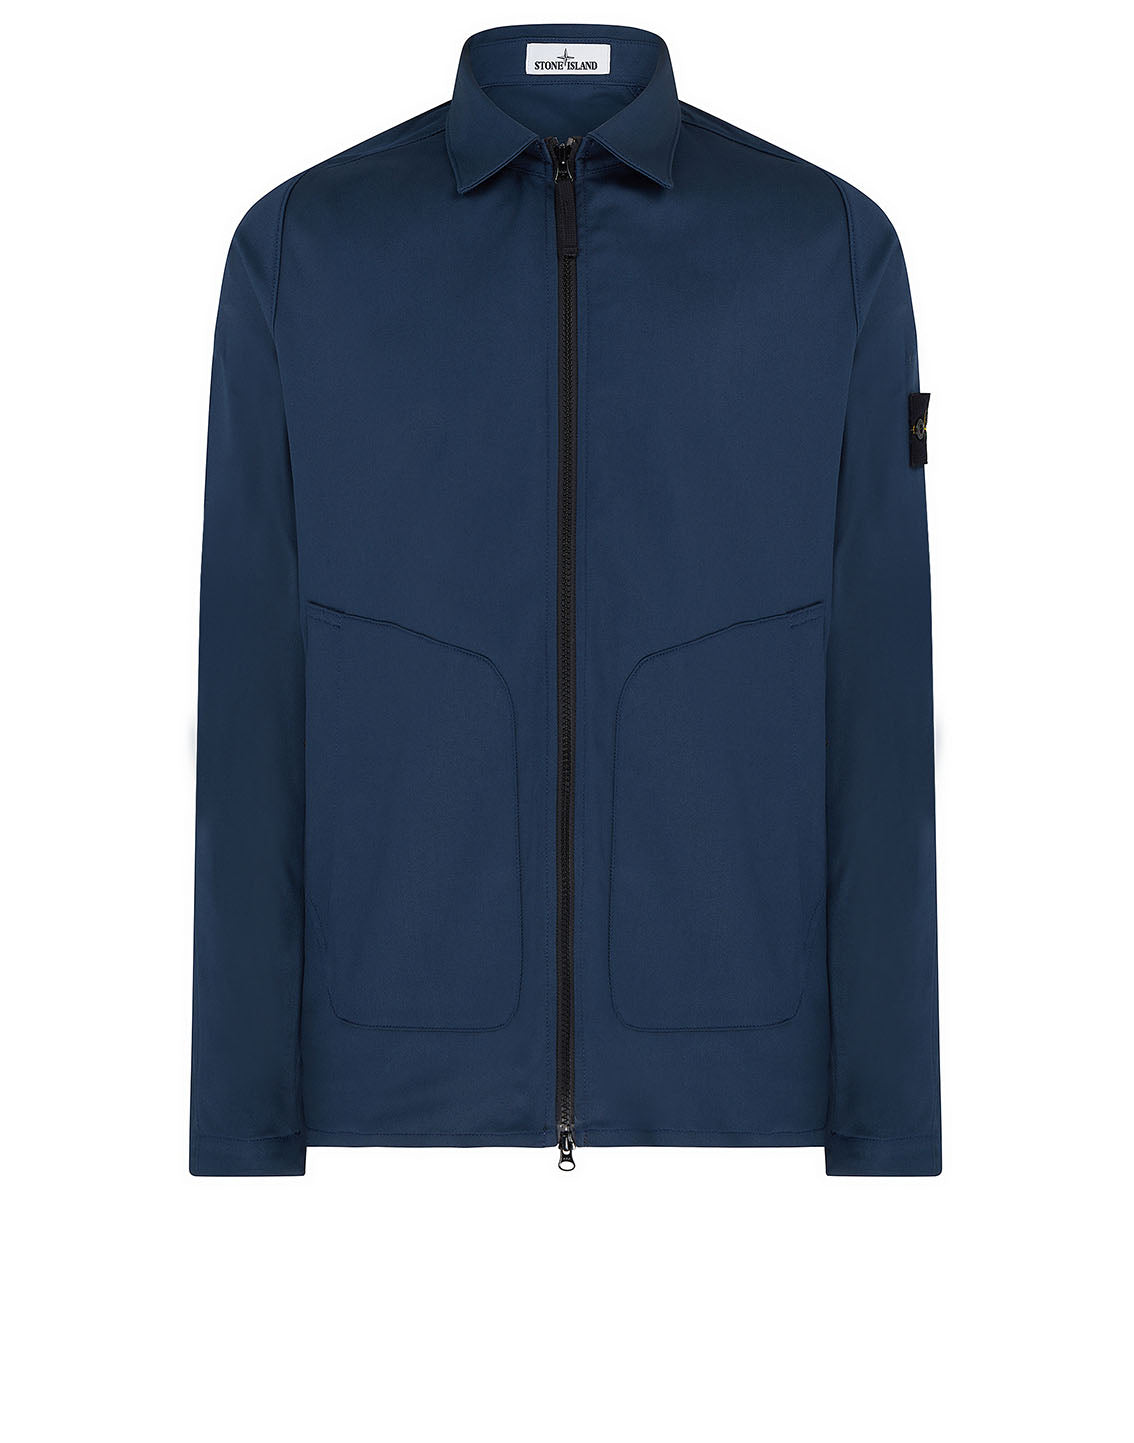 11905 Overshirt in Blue Marine